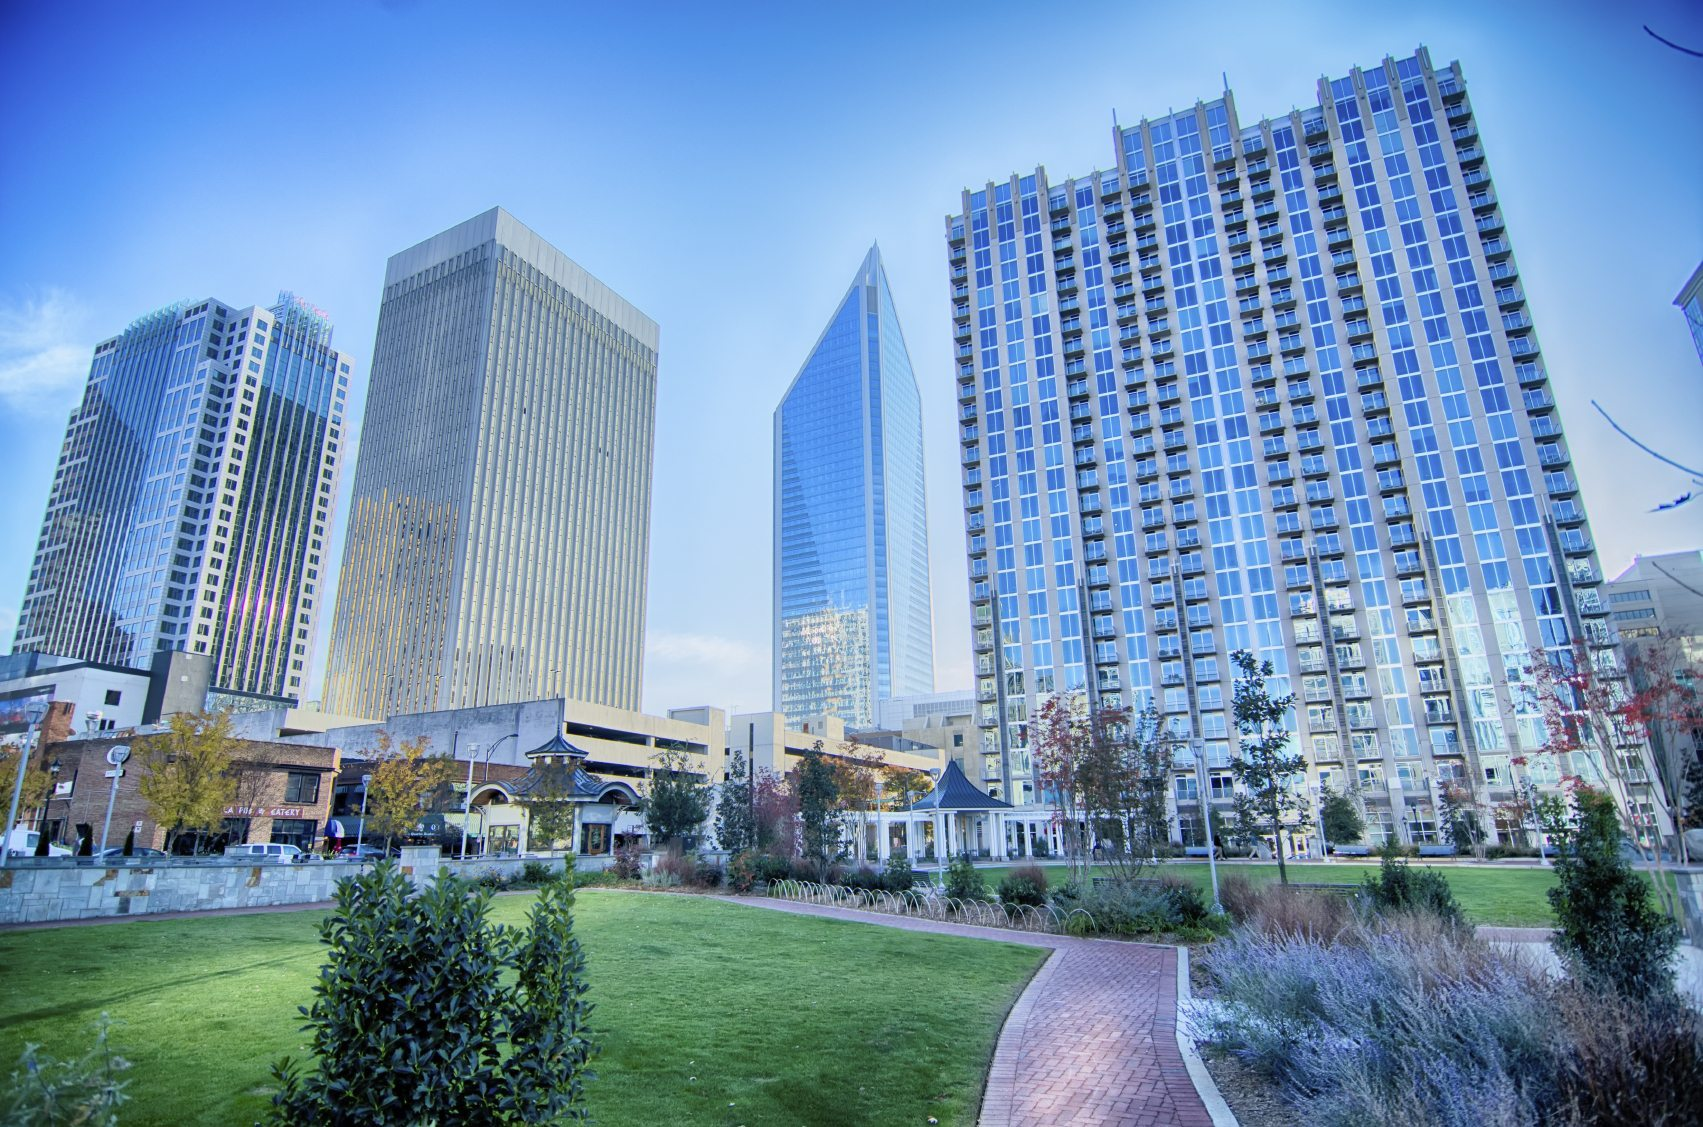 - WE ARE CONVENIENTLY LOCATED in the heart of uptown charlotte